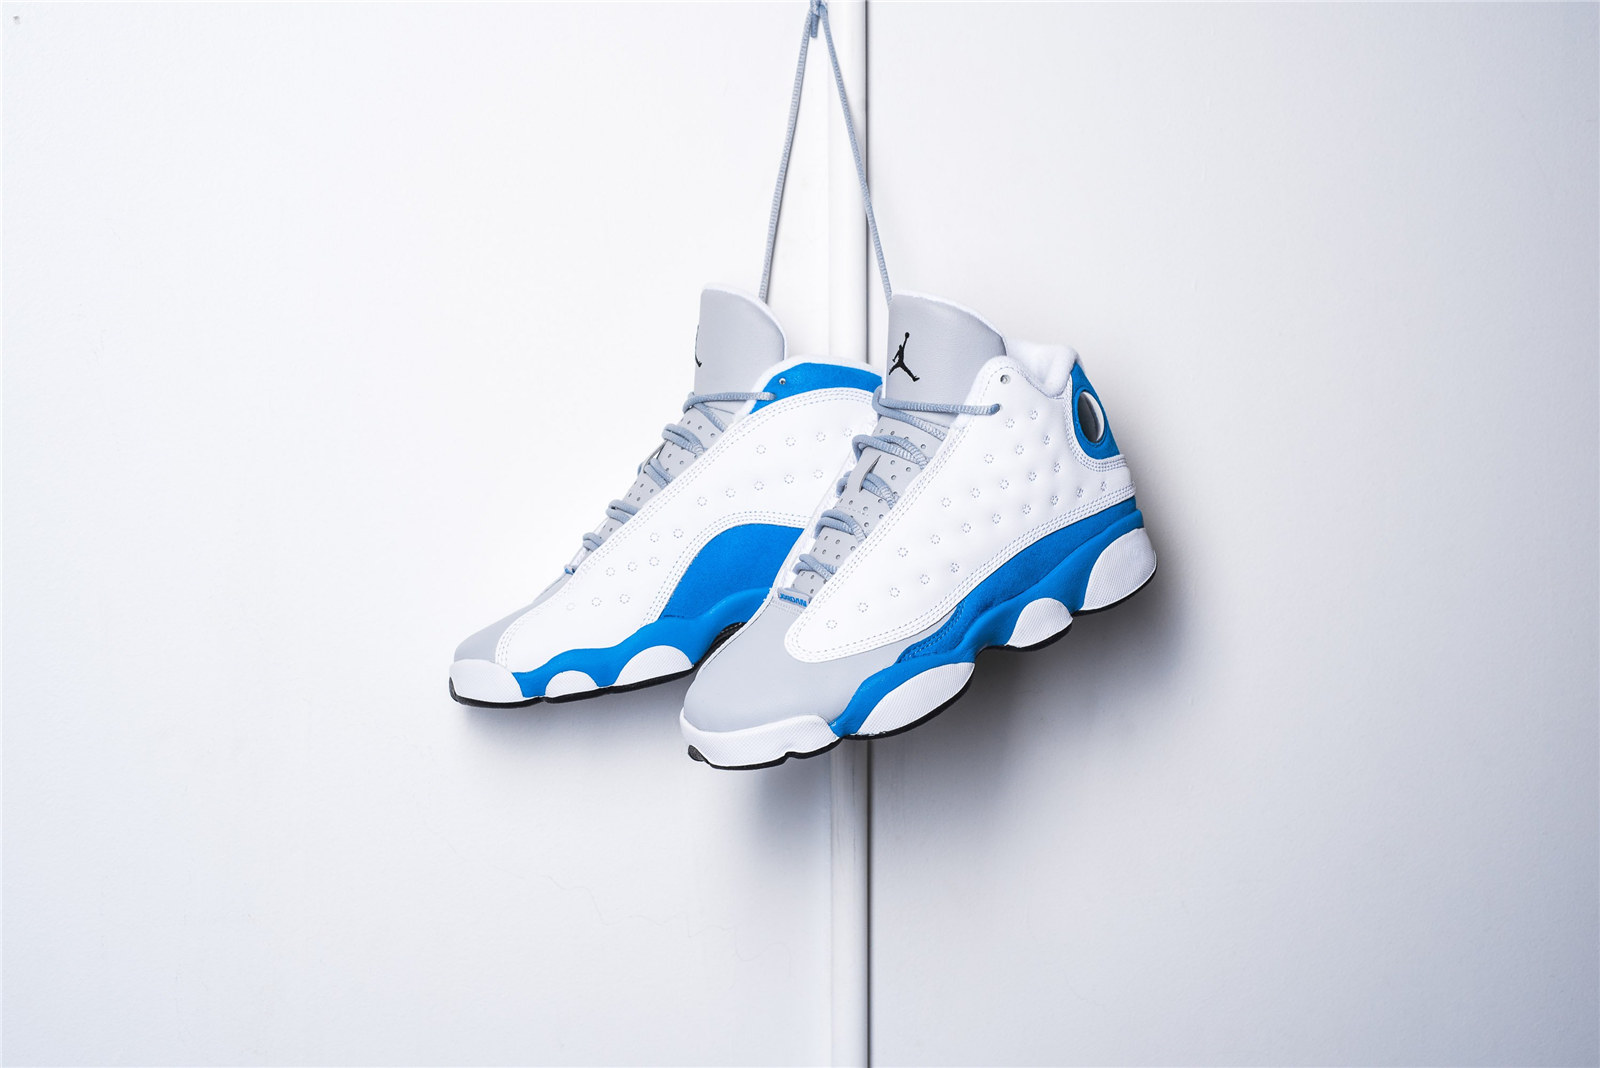 c5478f97e7e where can i buy nike air jordan retro 13 gg italy blue white italy blue  wolf grey outlet. sale 90121 5f746; czech ...